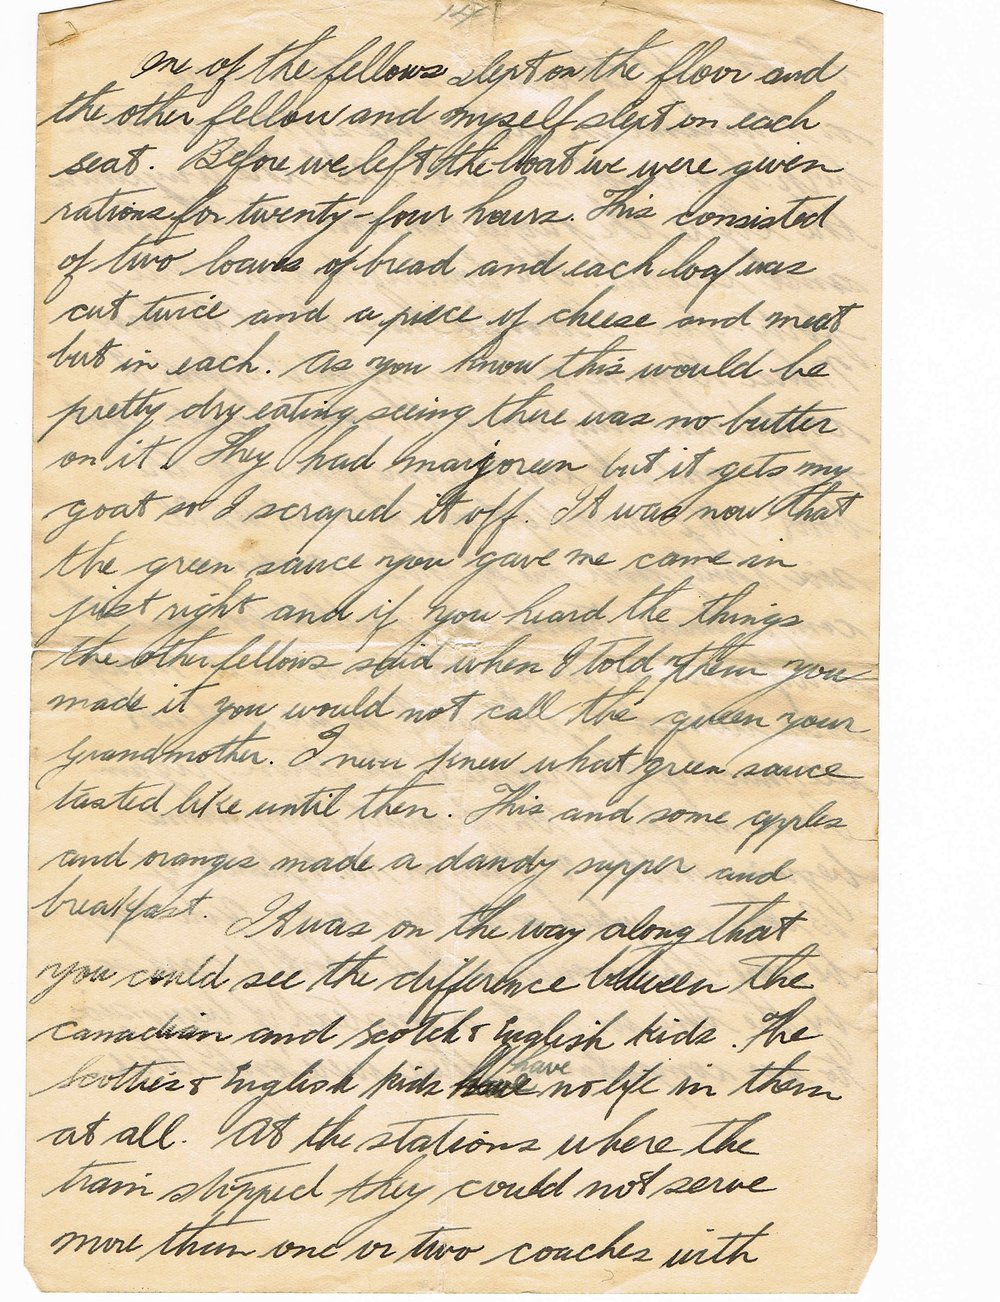 14th page of handwritten letter